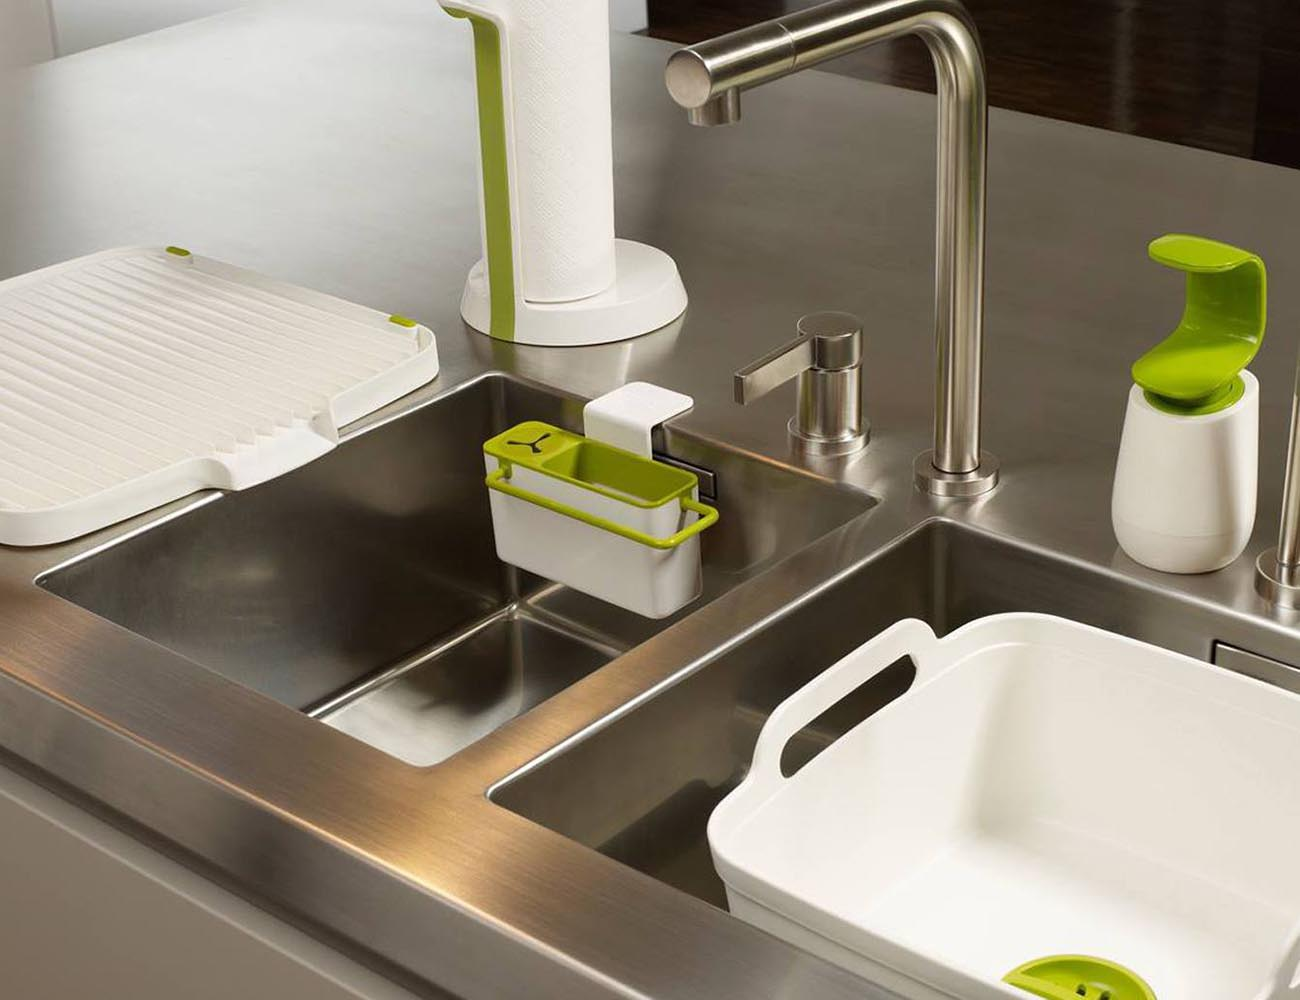 sink aid in sink caddy by joseph joseph gadget flow. Black Bedroom Furniture Sets. Home Design Ideas